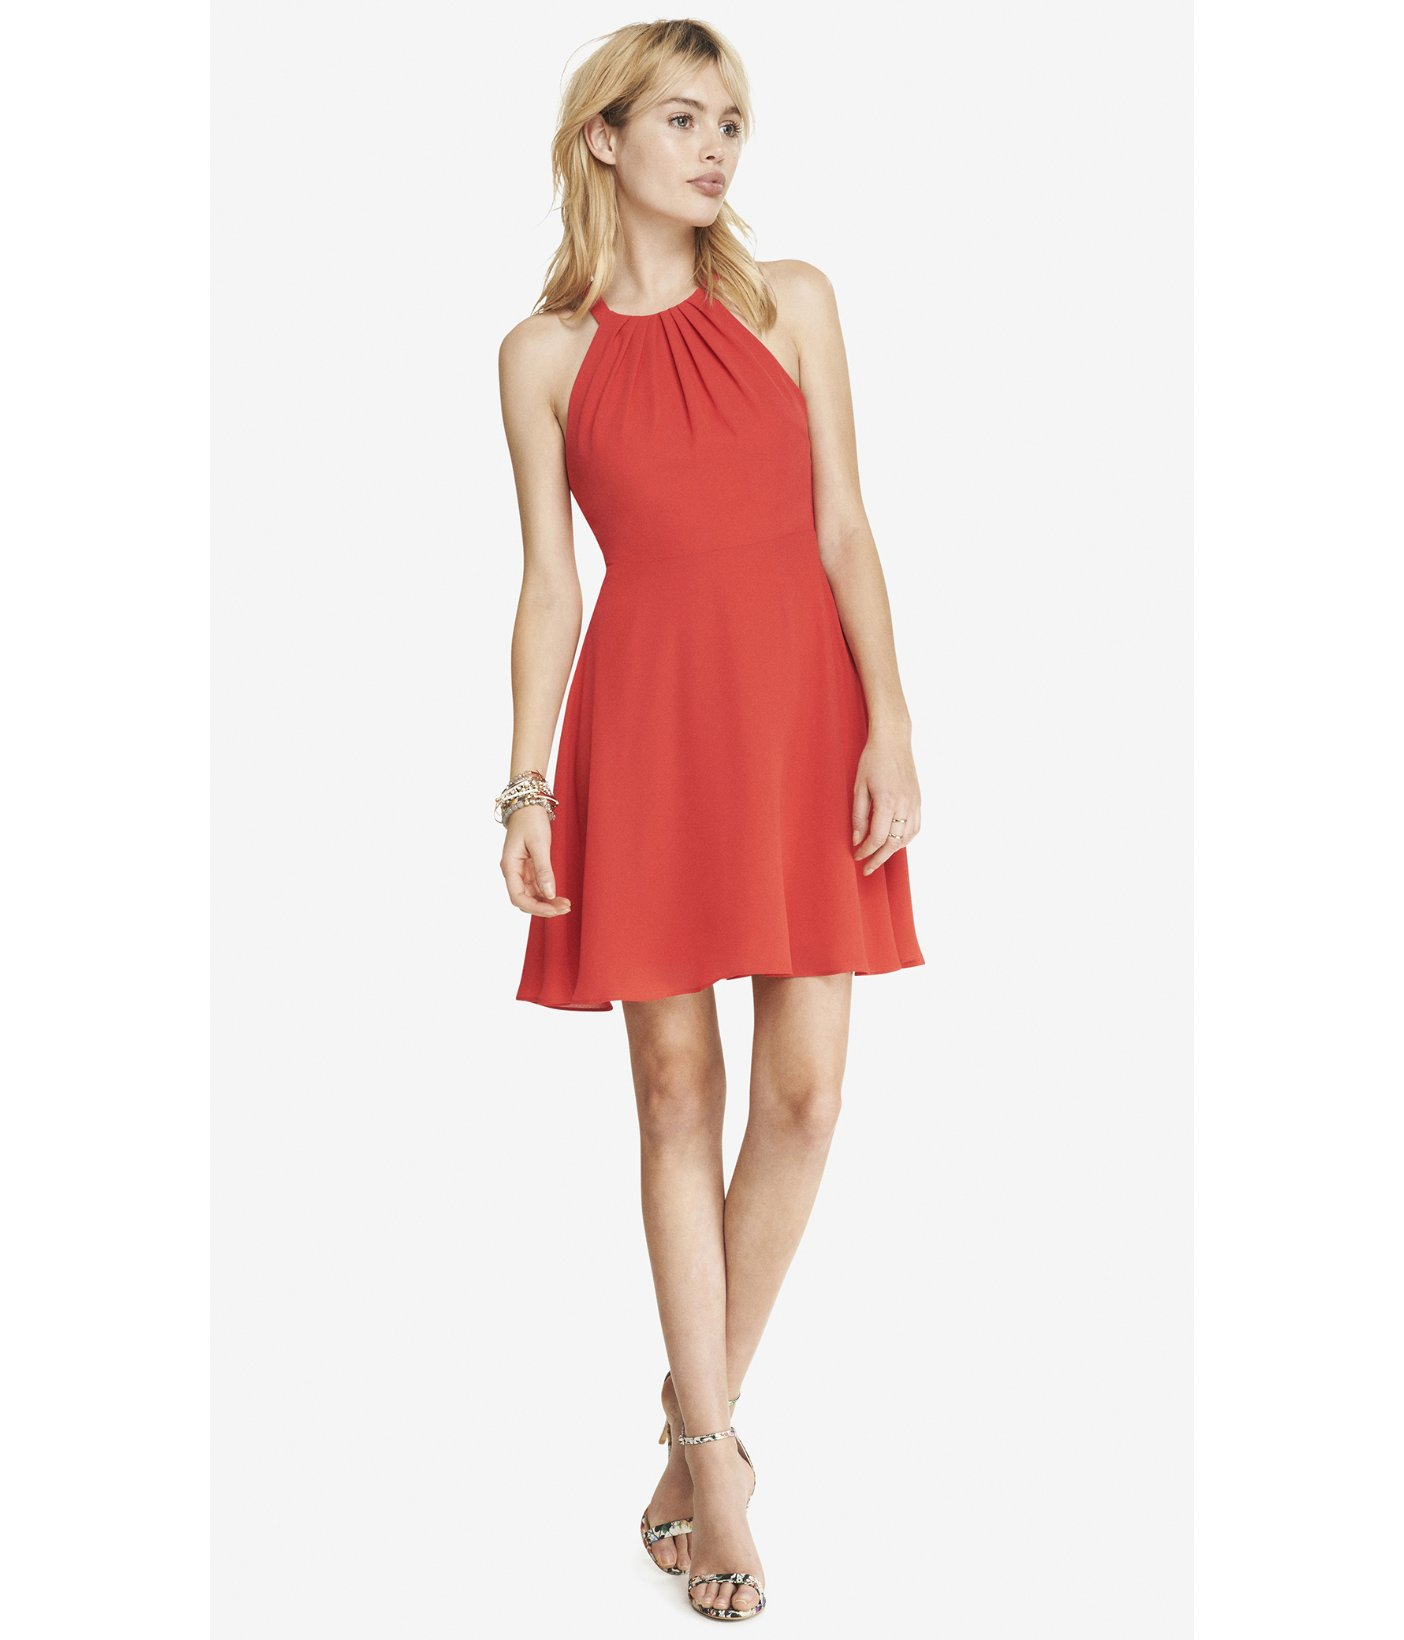 Express Red Fit And Flare Halter Dress in Red KISS KISS RED  Lyst